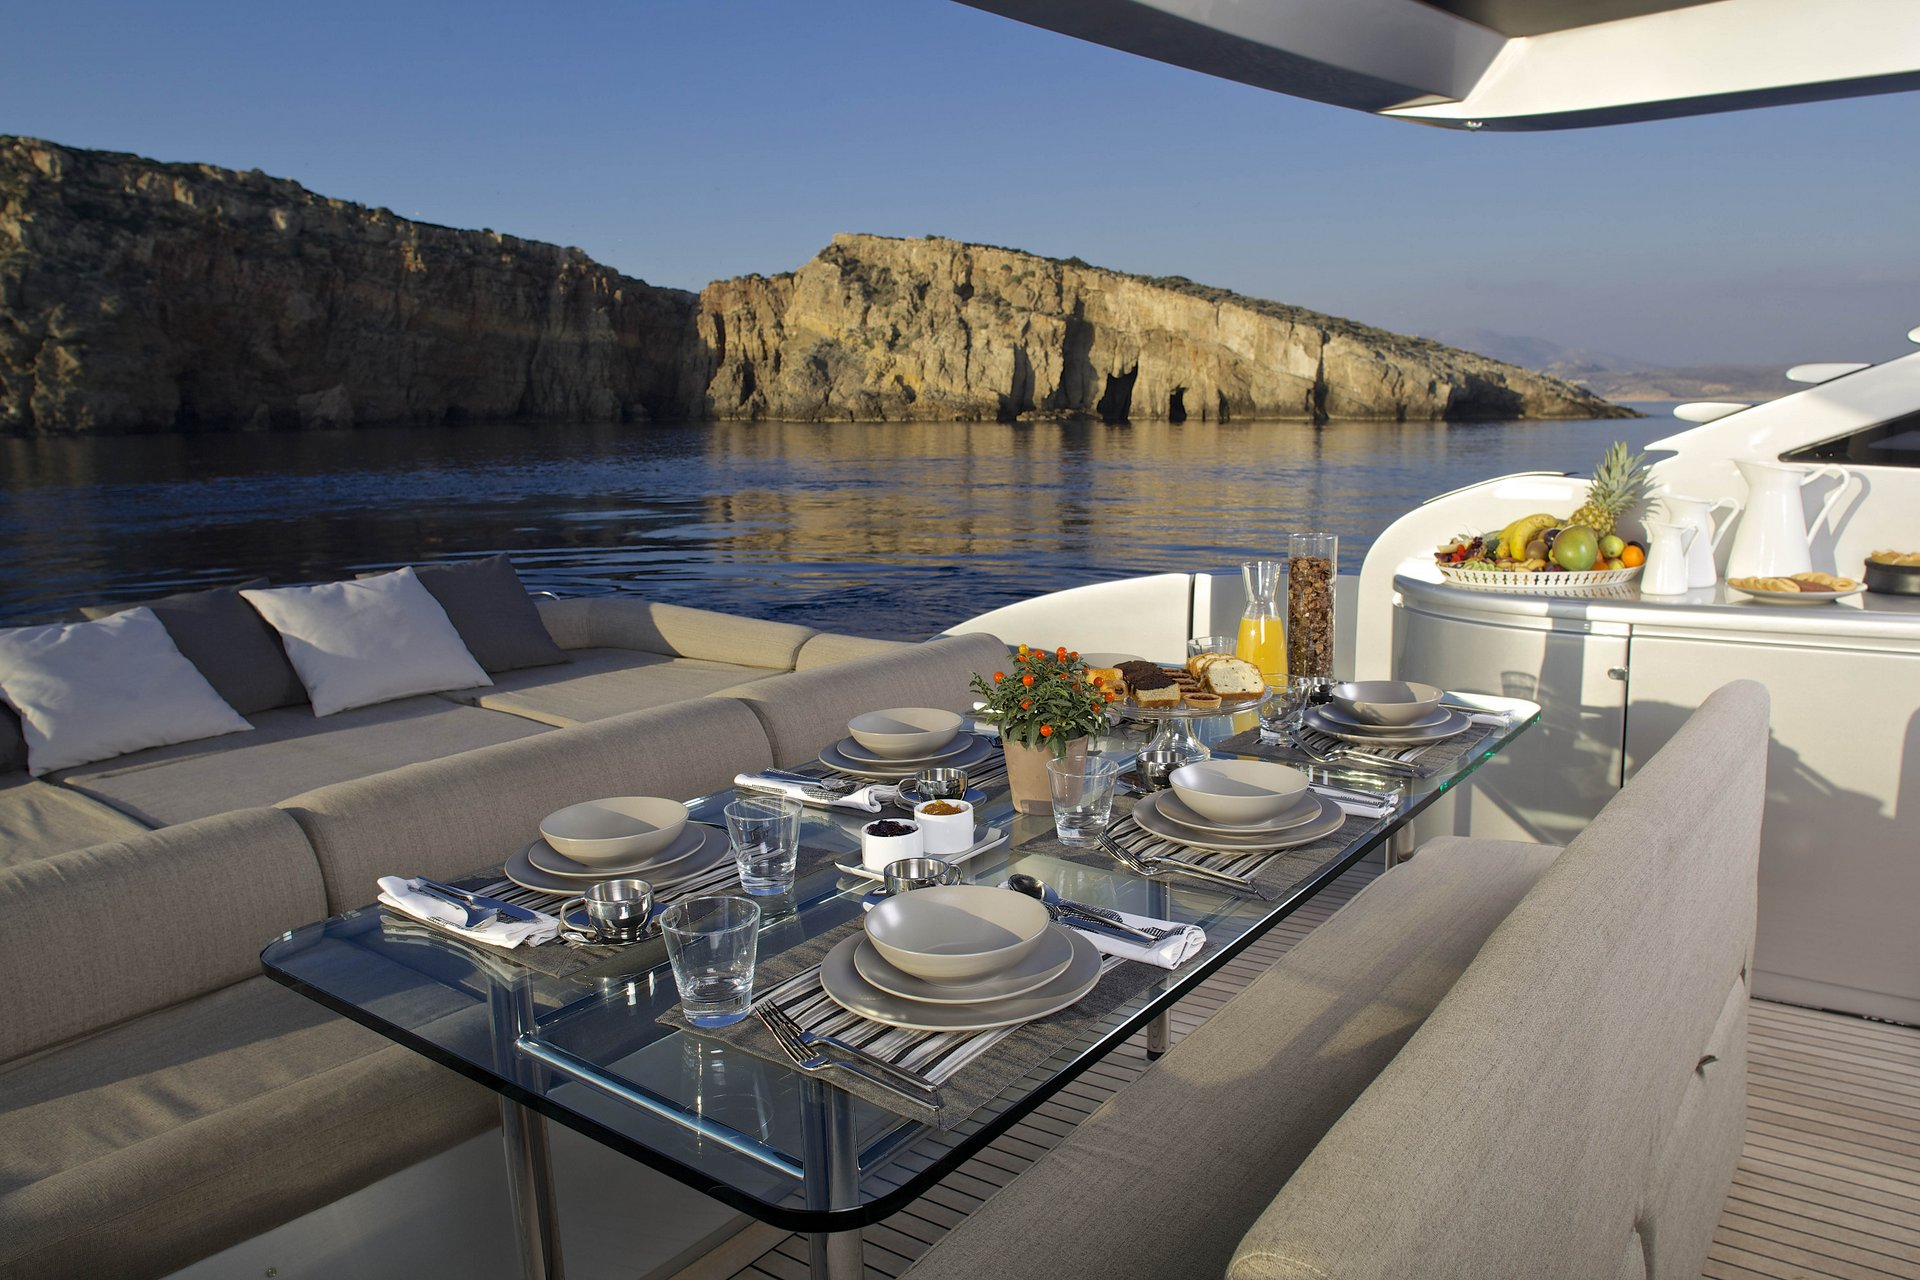 M/Y SOLARIS yacht for charter deck dining table